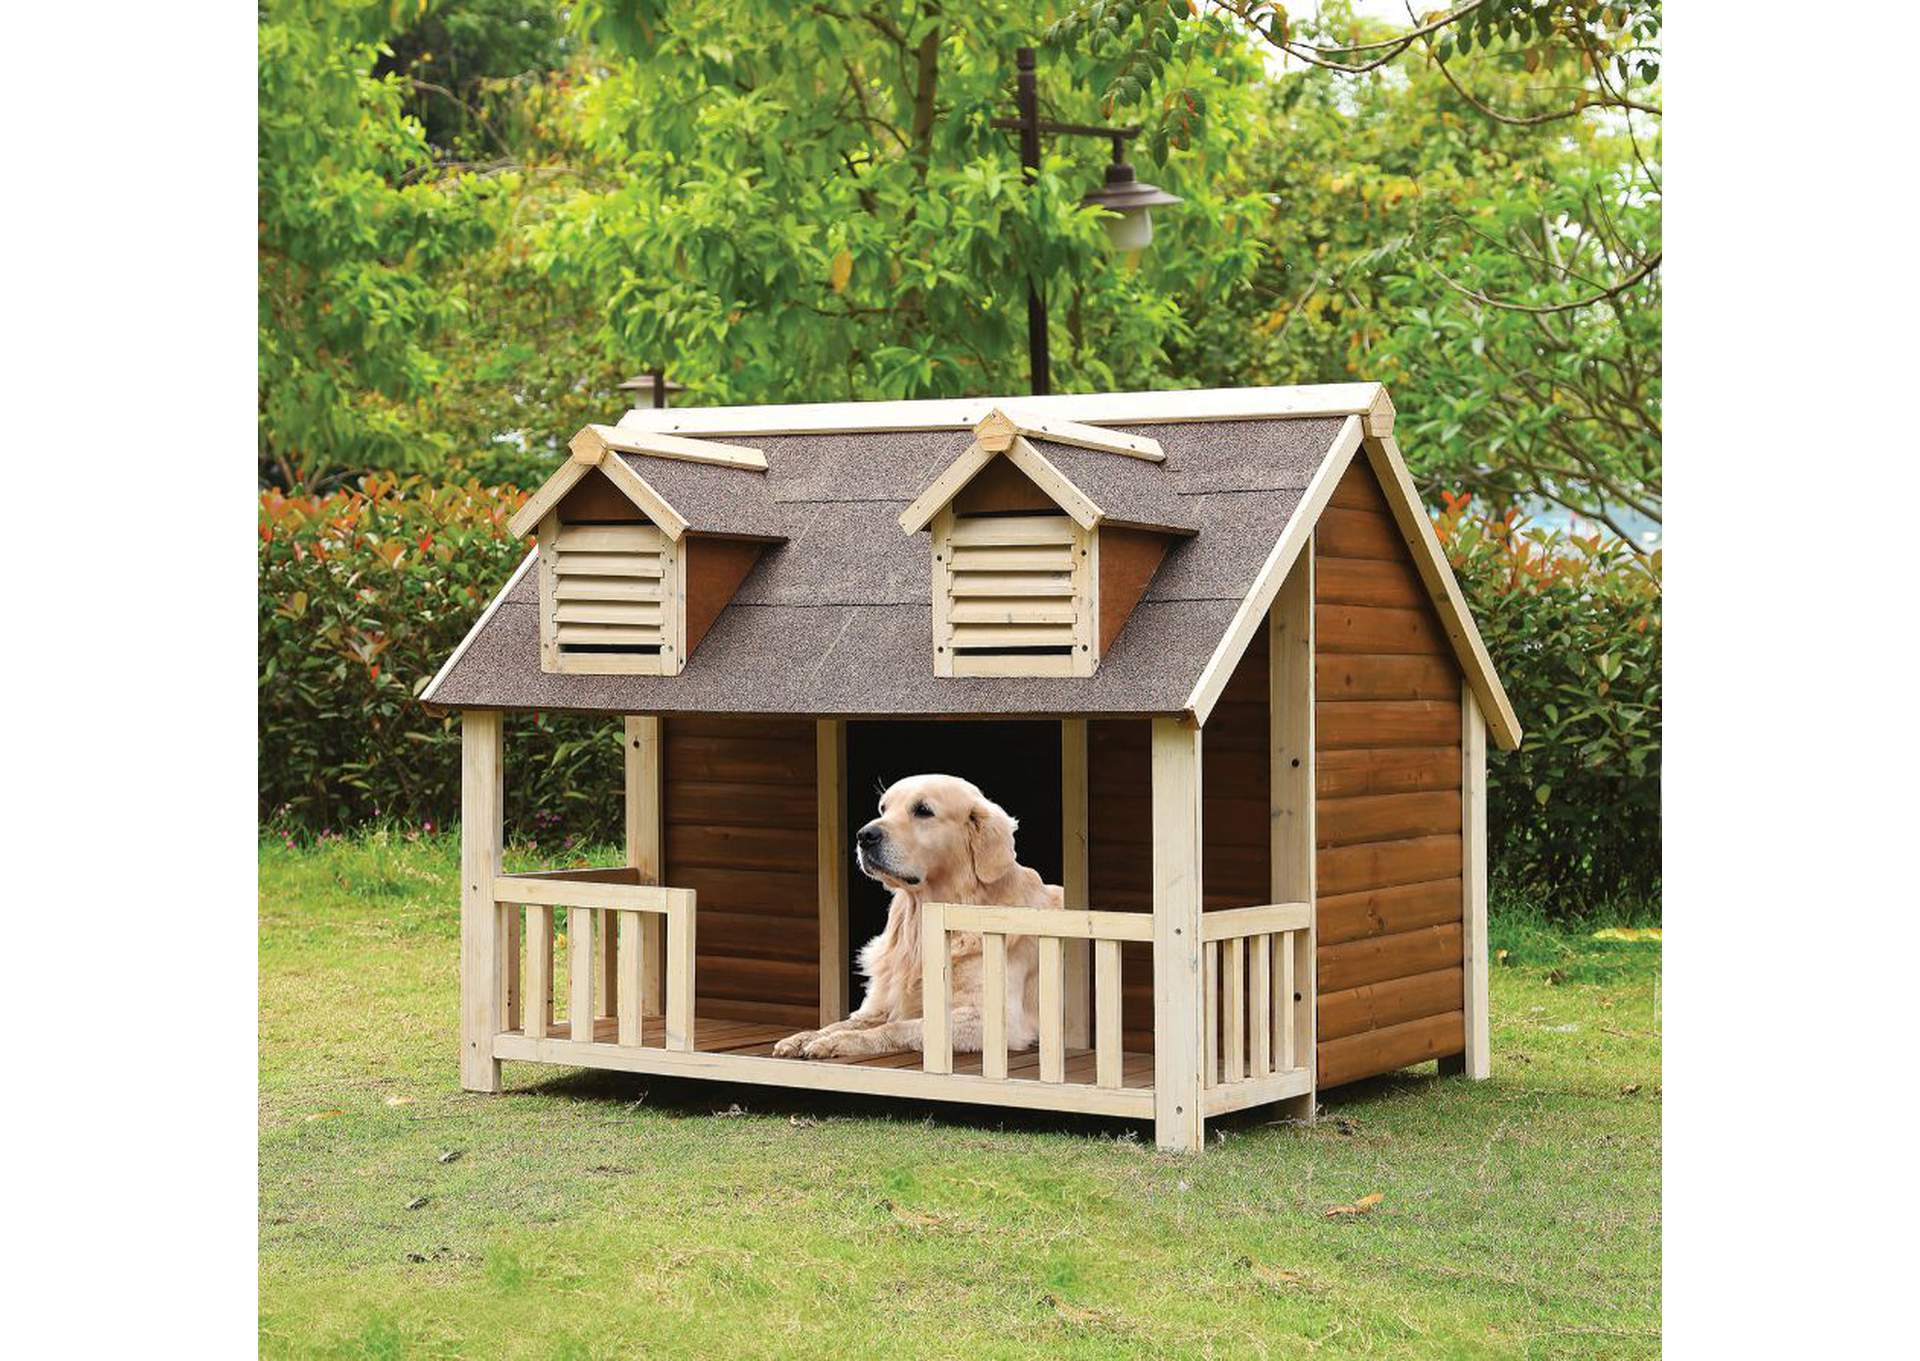 Rufus Cream & Oak Pet House,Acme